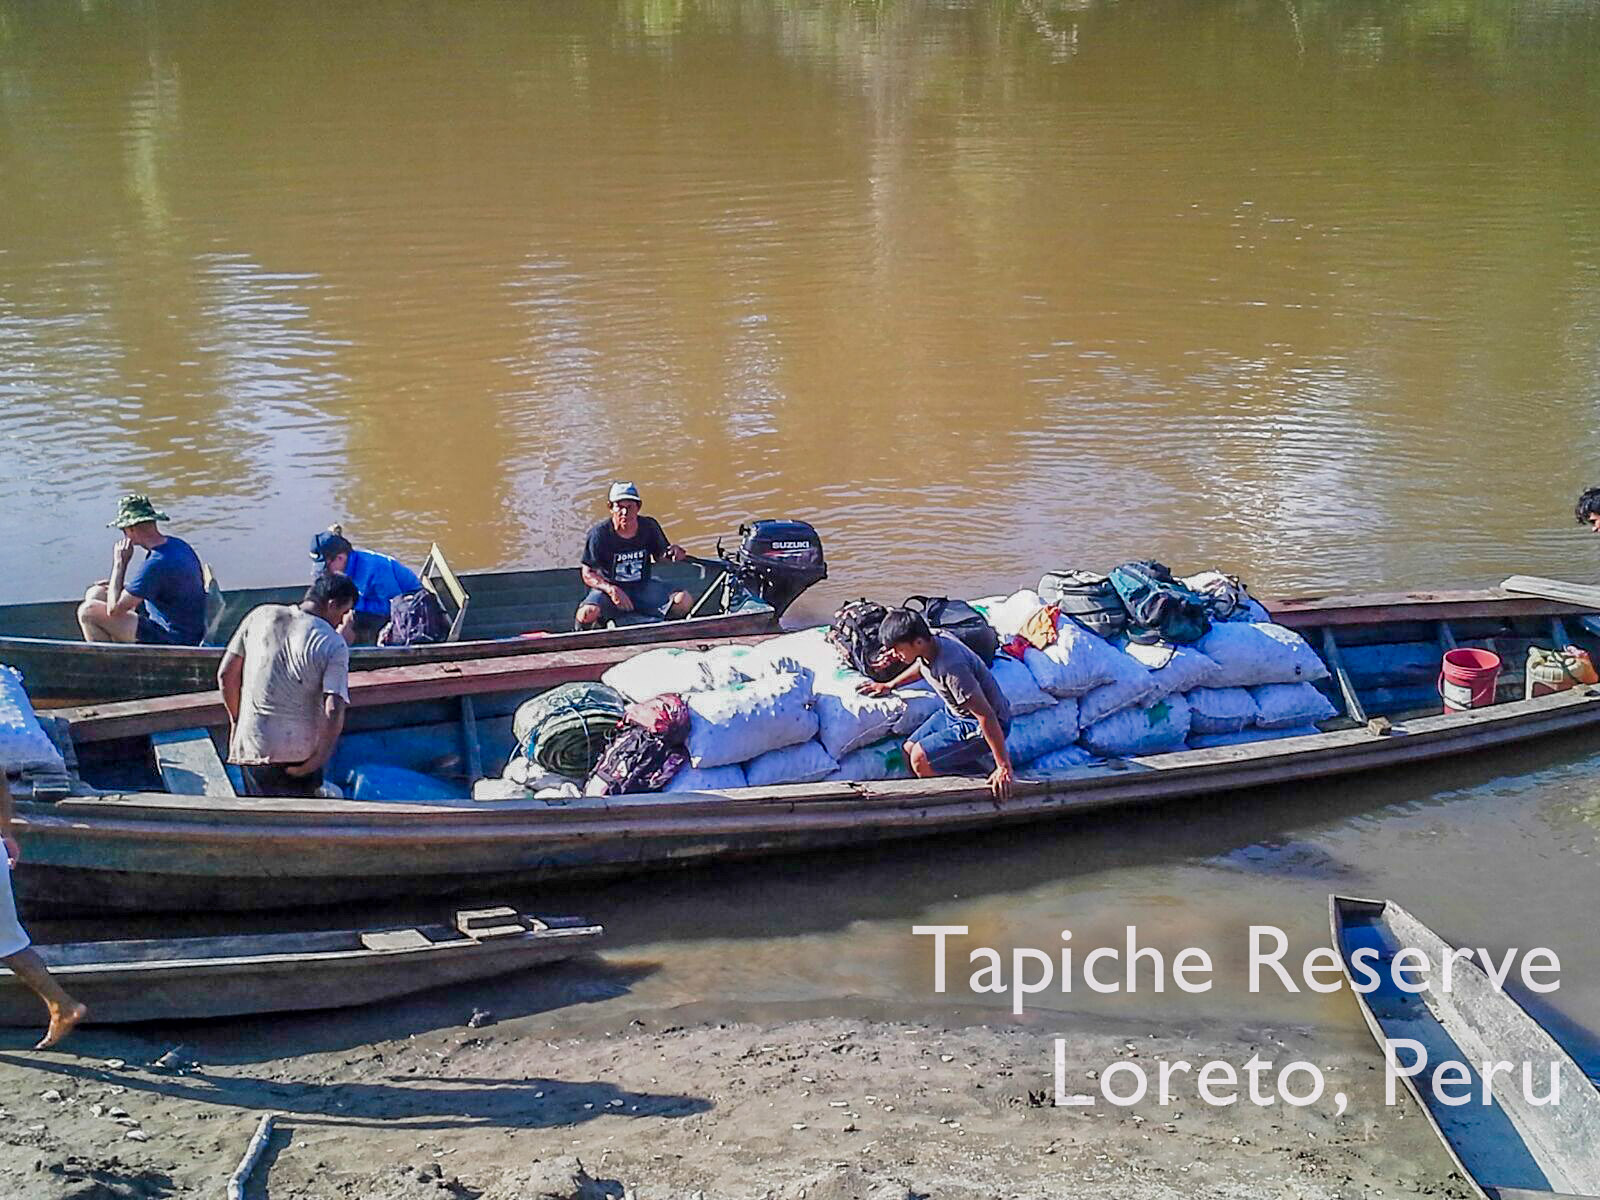 Aguaje fruits loaded onto the boat at the Tapiche Reserve, ready to go to market in Iquitos